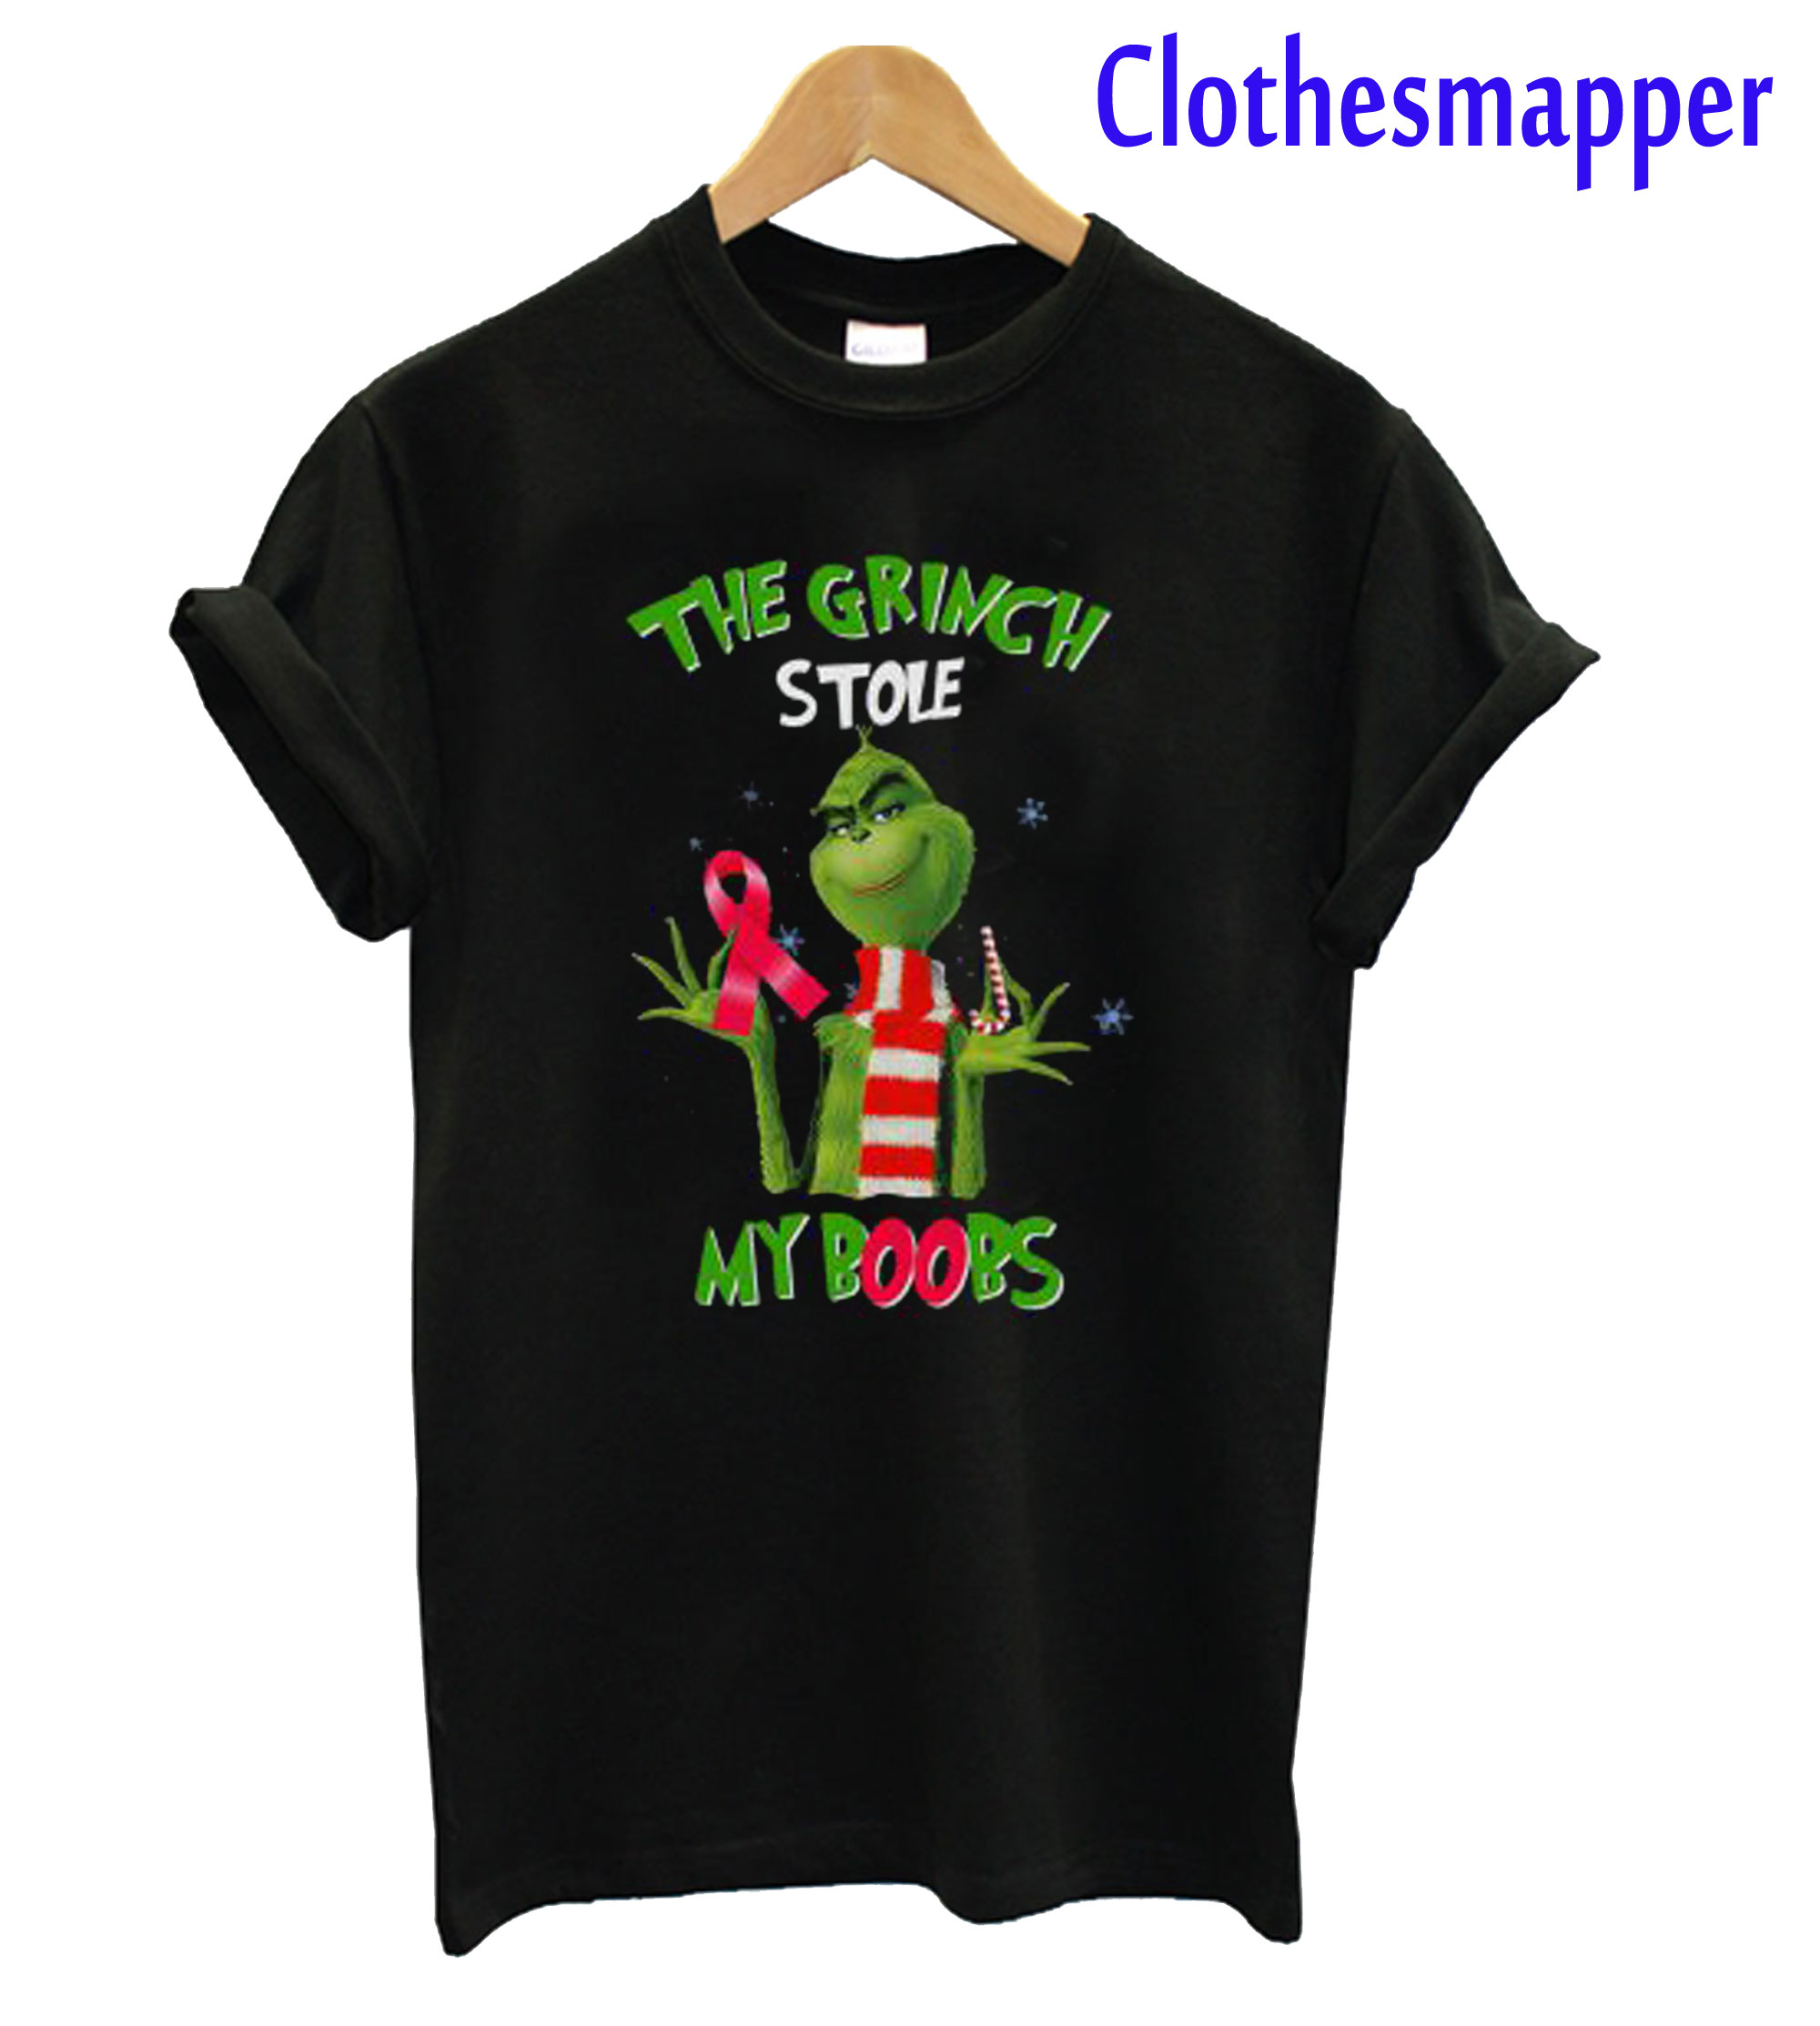 The Grinch stole my boobs T-Shirt